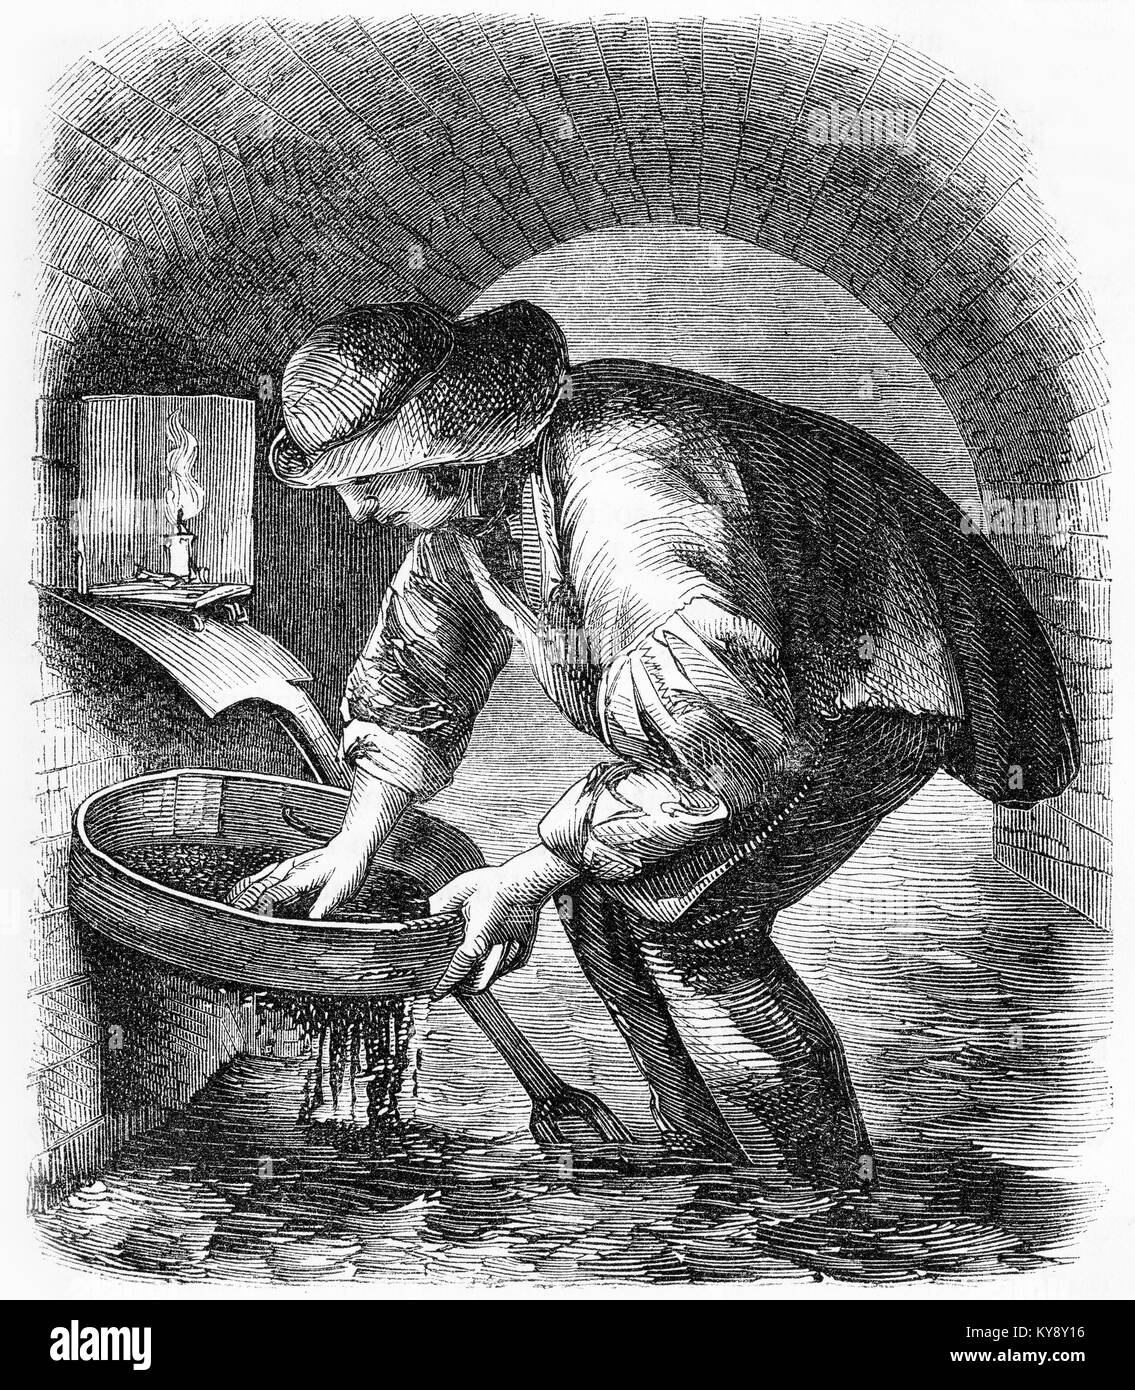 Engraving of a sewer hunter commonly at work cleaning the sewers of London during the Victorian era. From an original - Stock Image